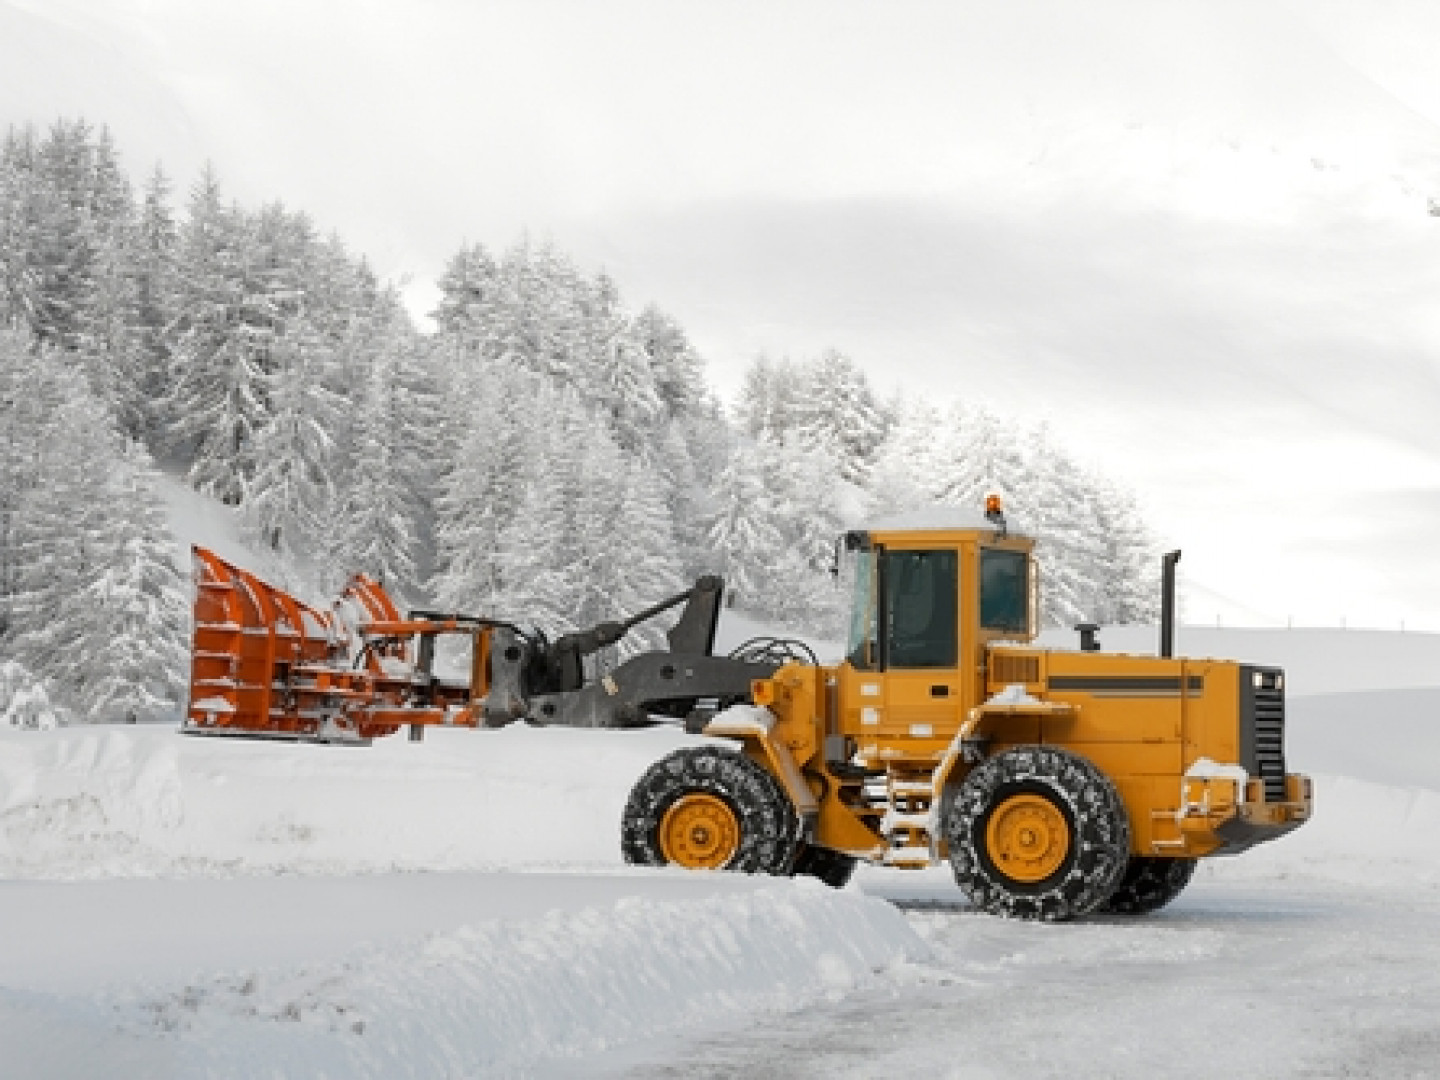 DCJ Specalizes in Commercial Snow Removal in The Warwick, RI Area